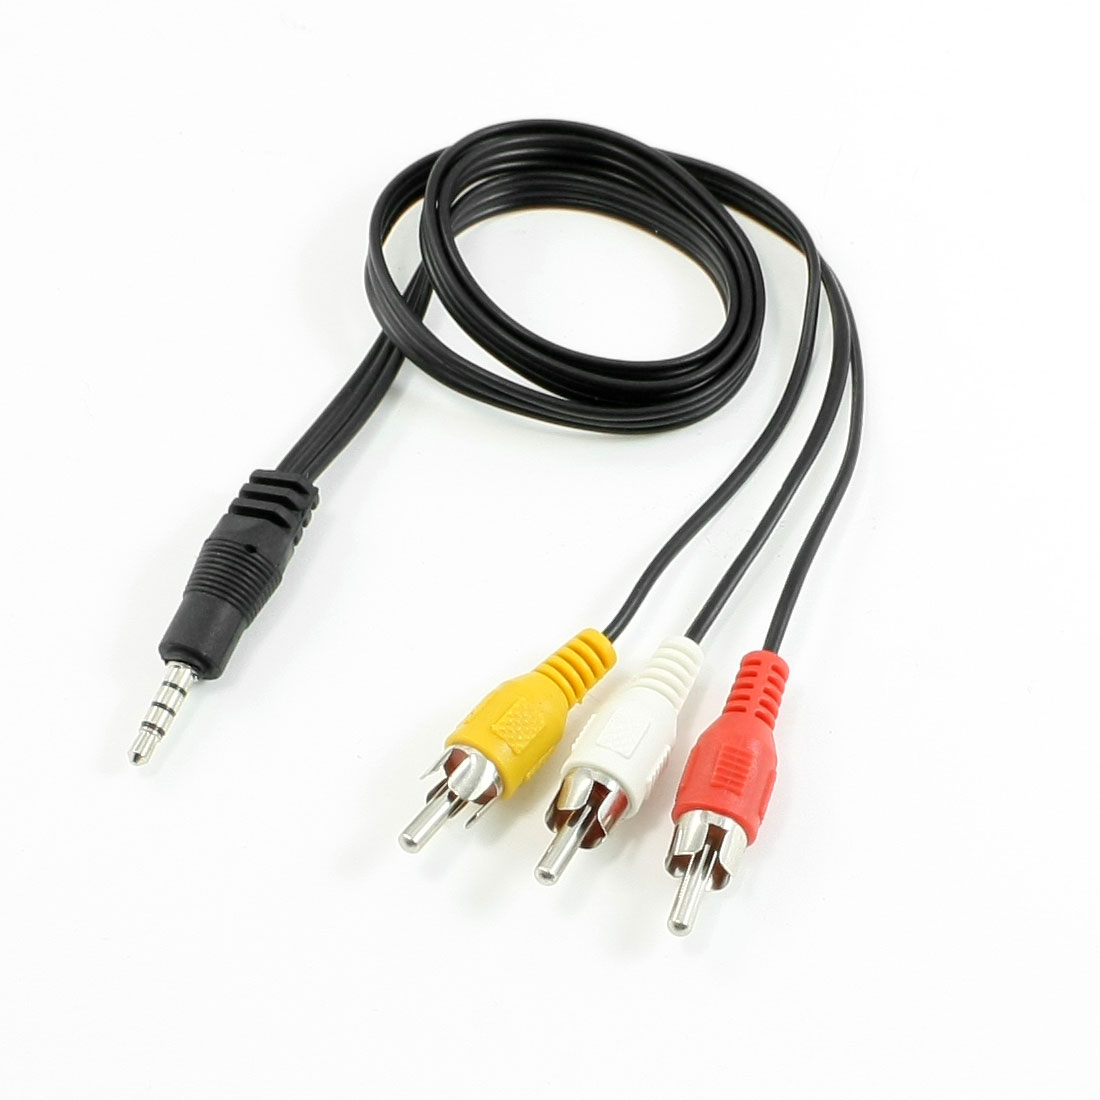 "30"" Long 3 RCA Male to 3.5mm Male Plug Audio Splitter Cable"